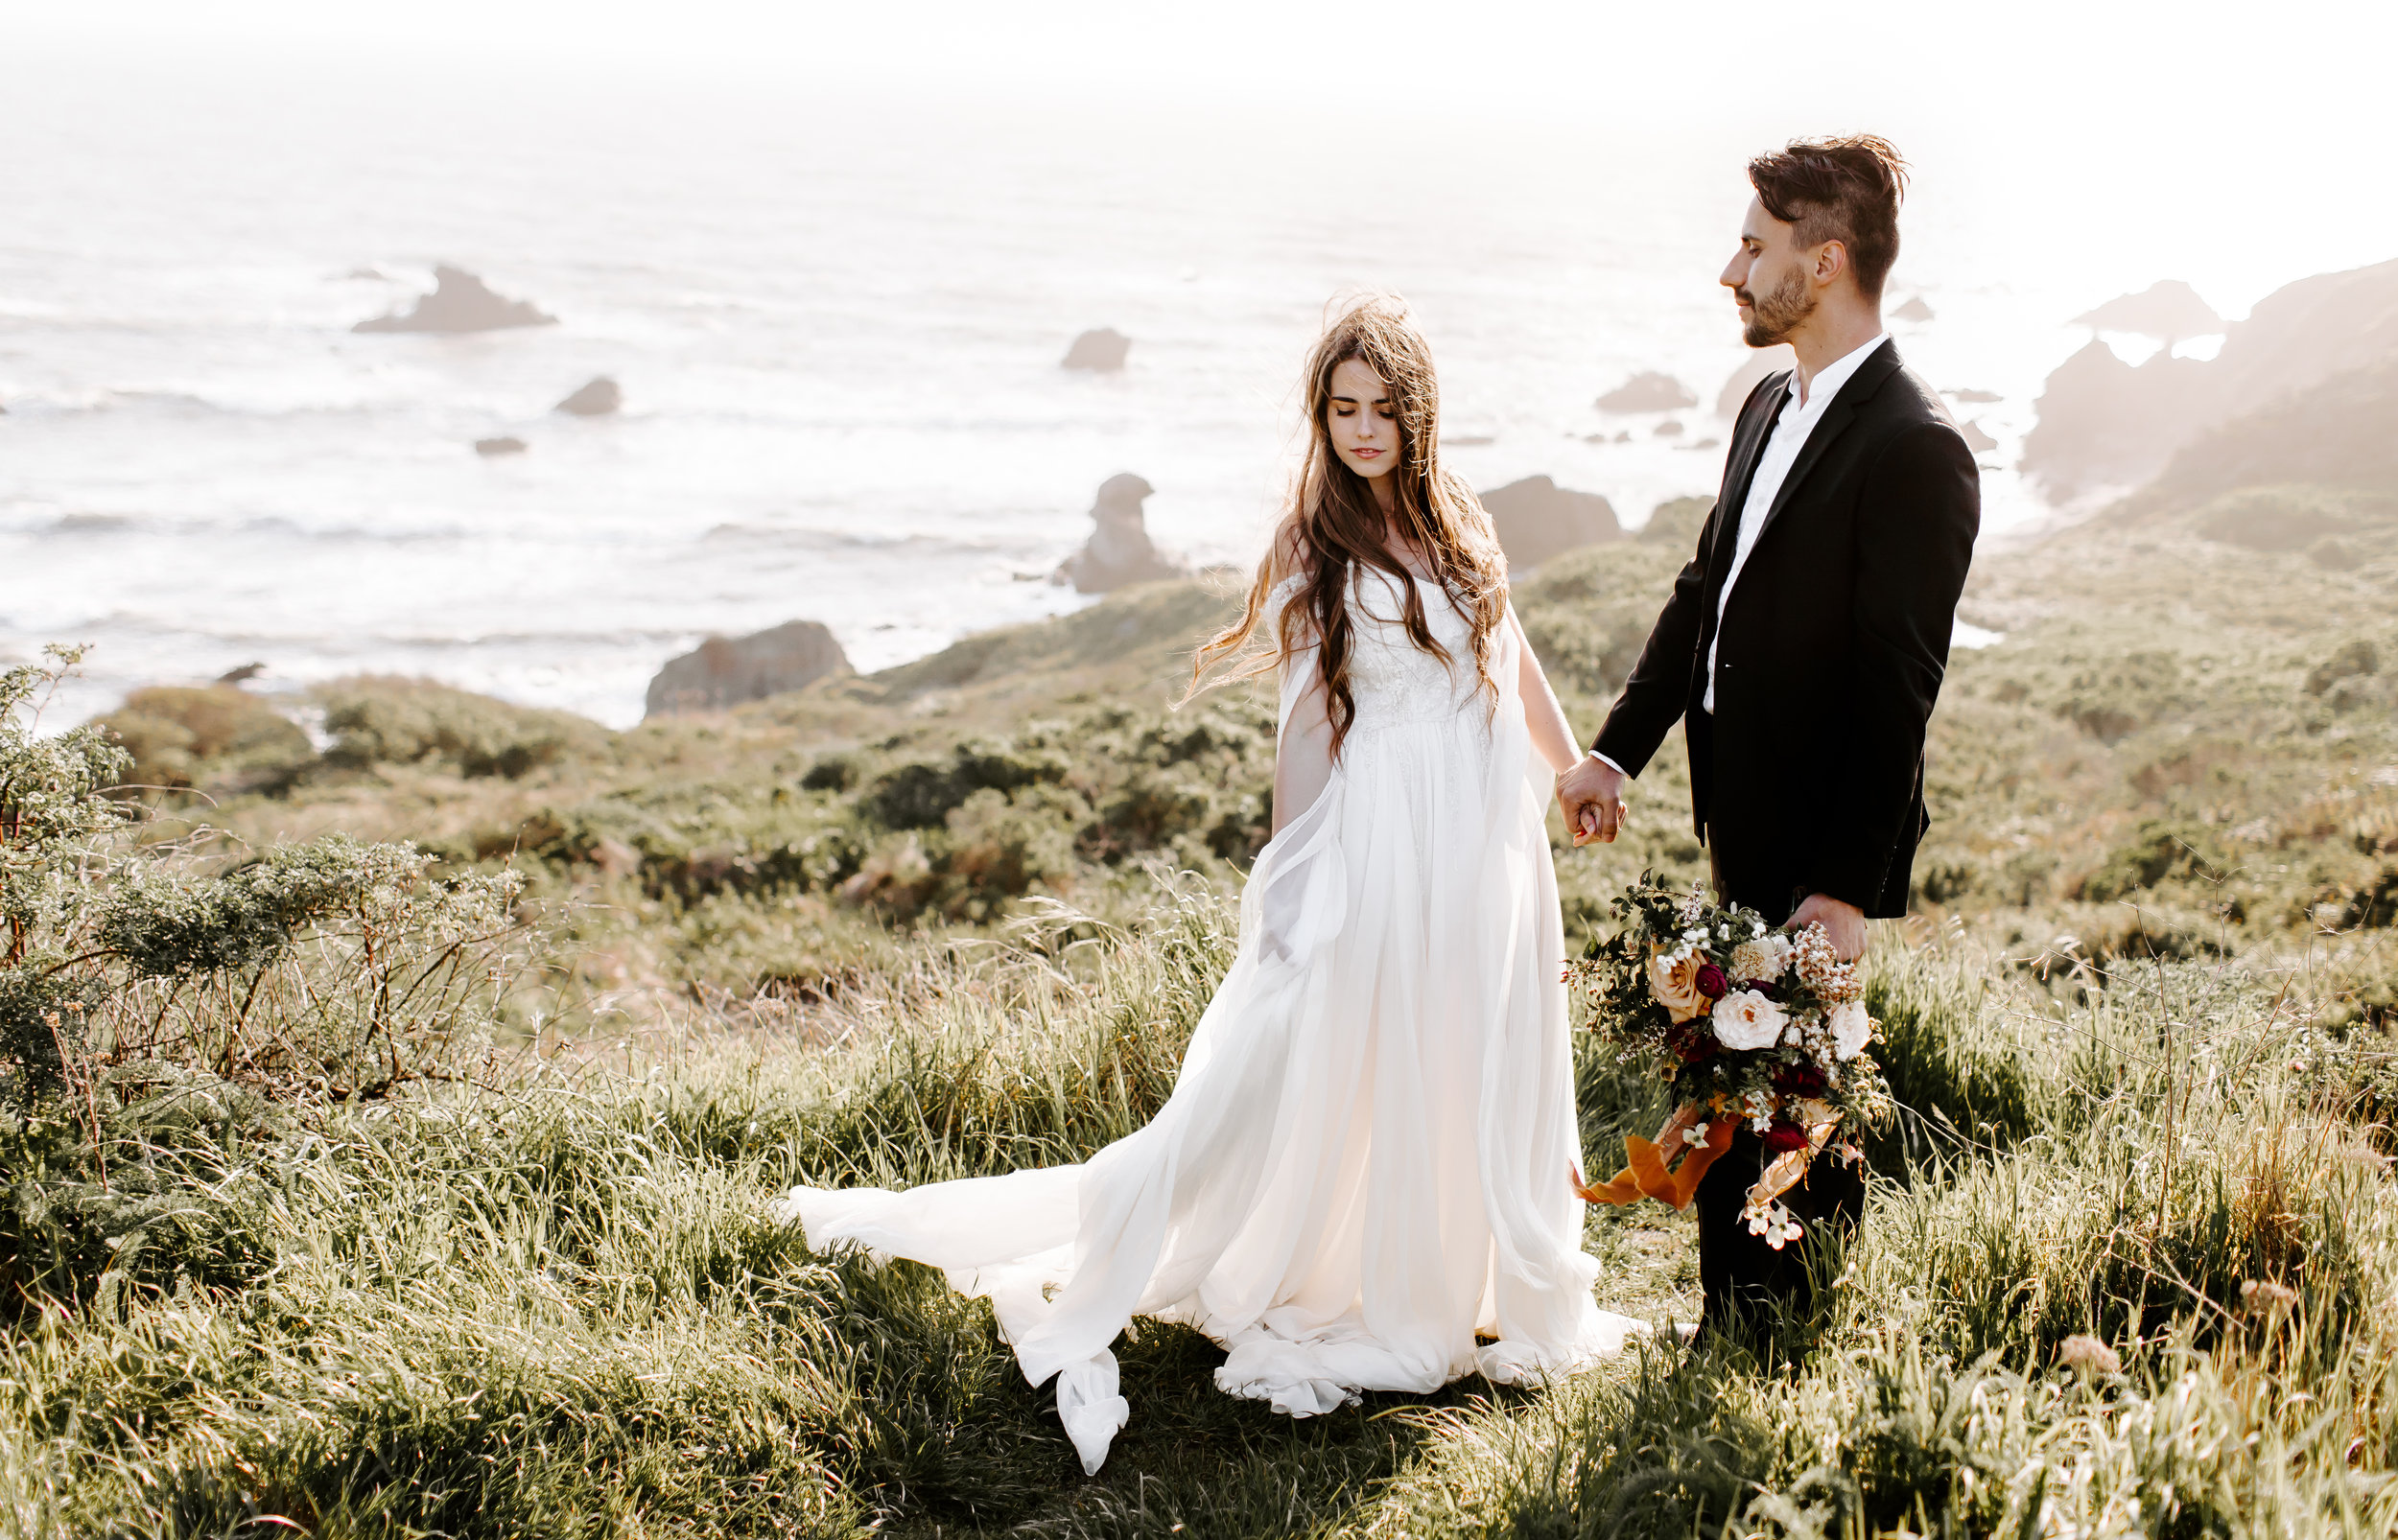 NorthernCaliforniaElopement_5.jpg